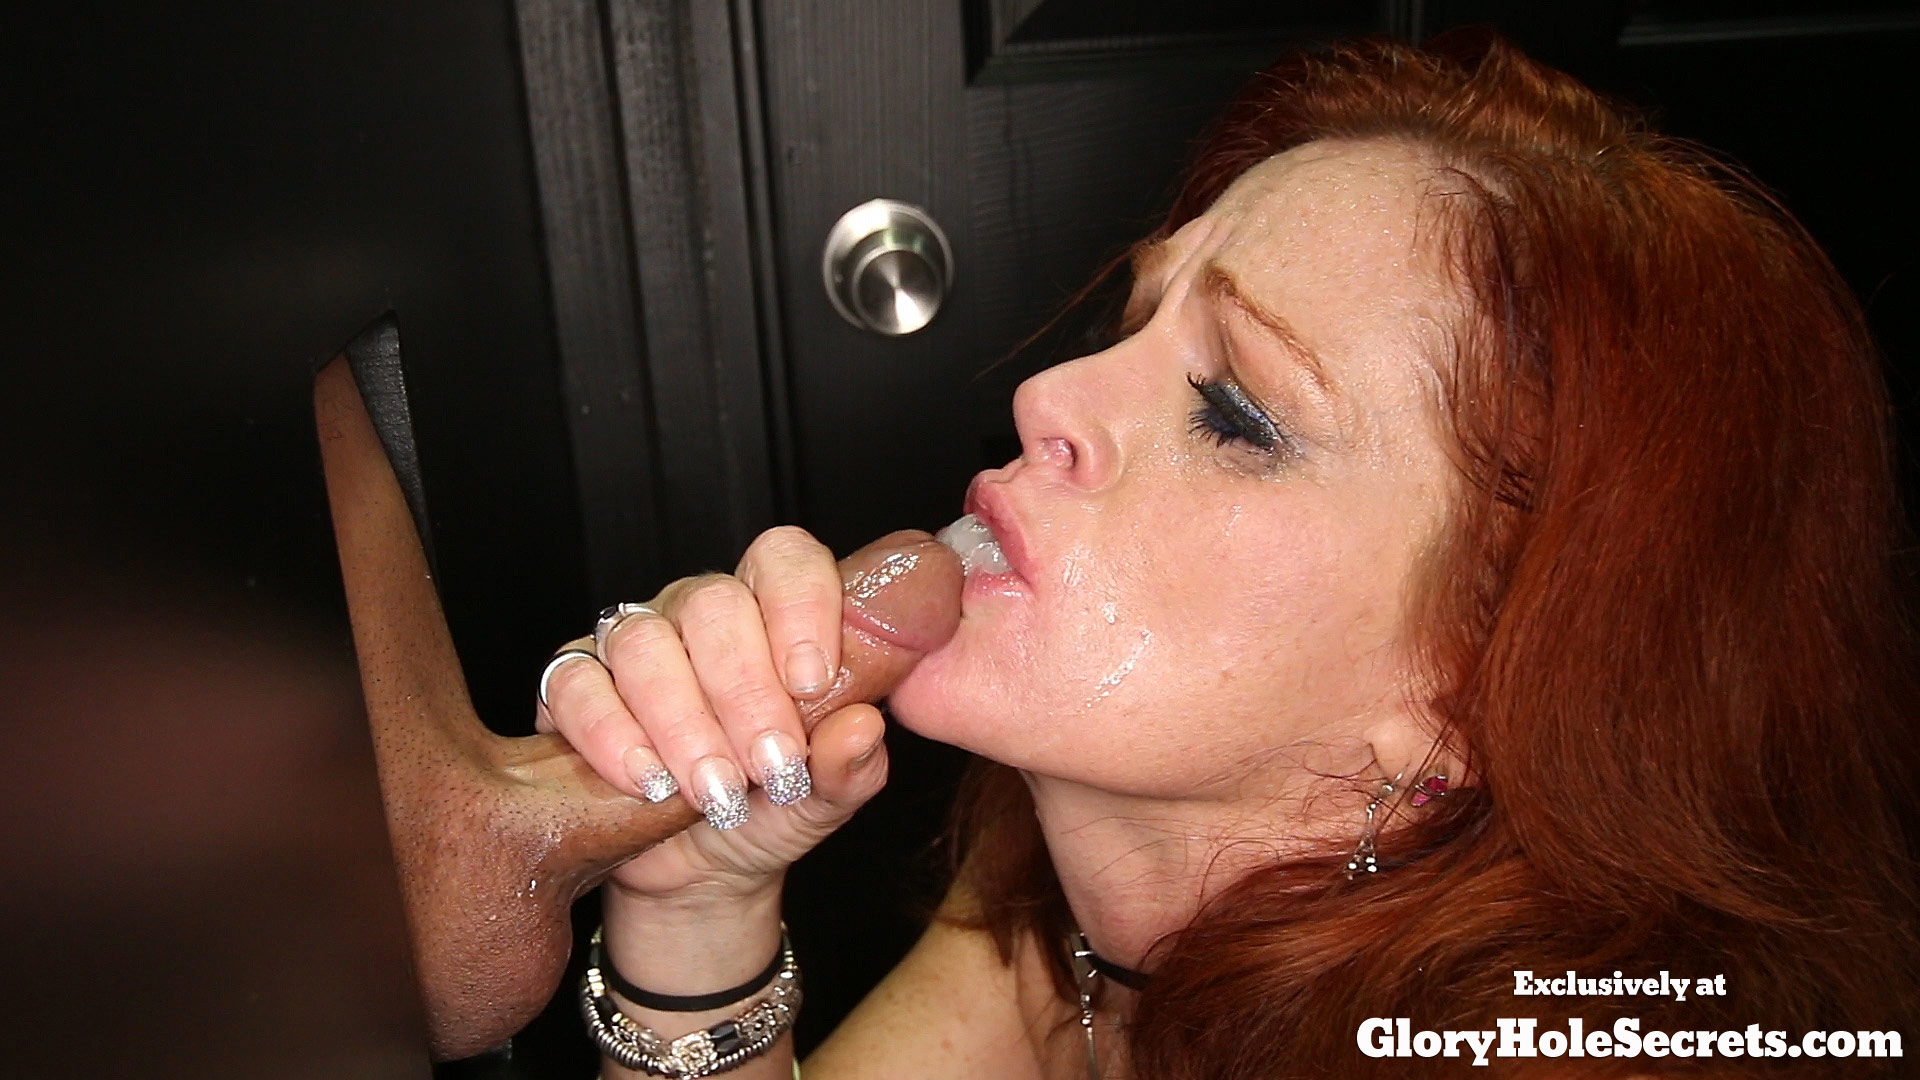 Congratulate, this free glory hole blowjob movies opinion